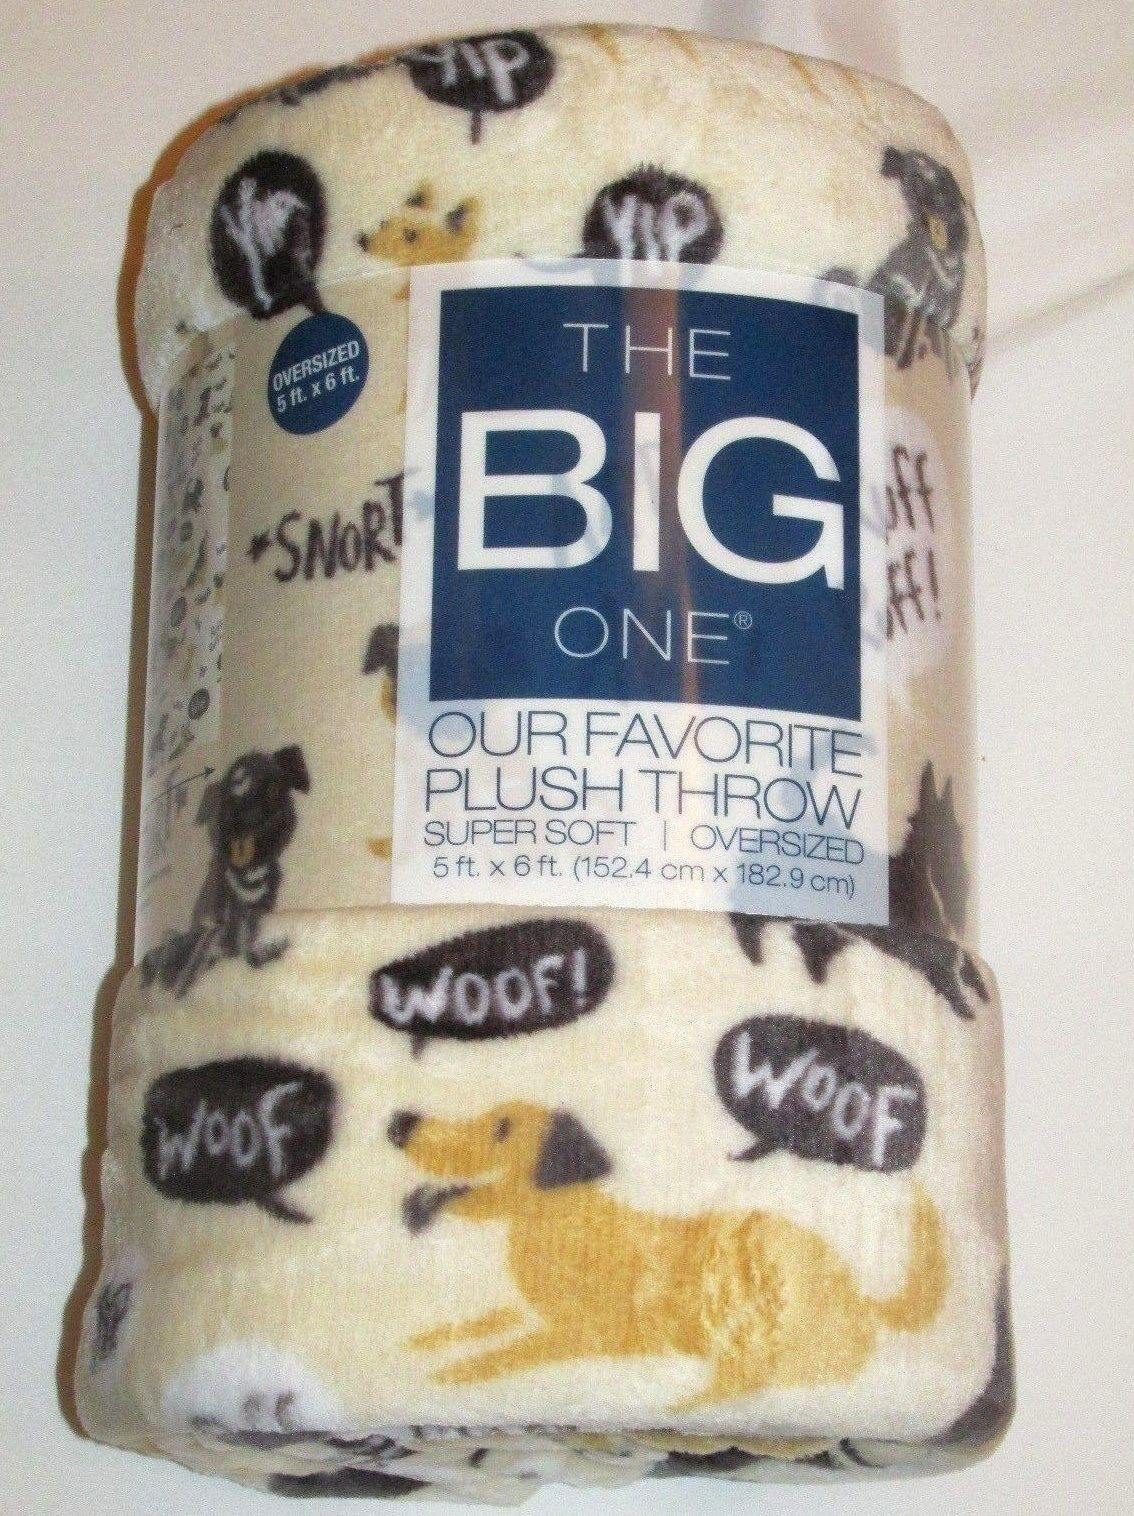 The Big One Throw Blanket Faux Fur Plush Dogs Dog 2017 Oversized Soft 5' x 6'